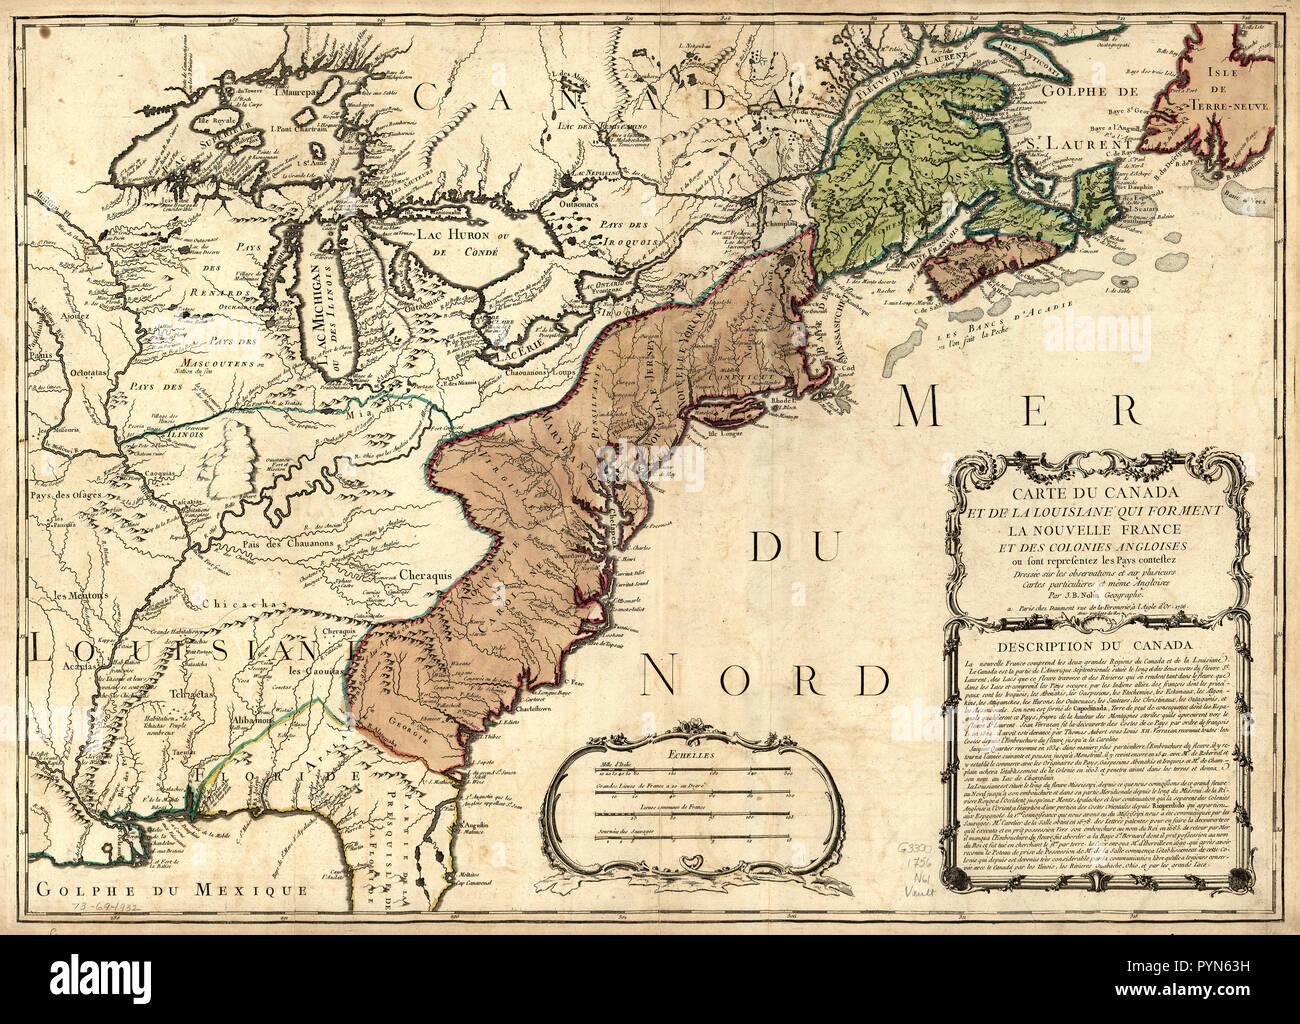 Vintage Maps / Antique Maps - Map of Canada and Louisiana that make ...